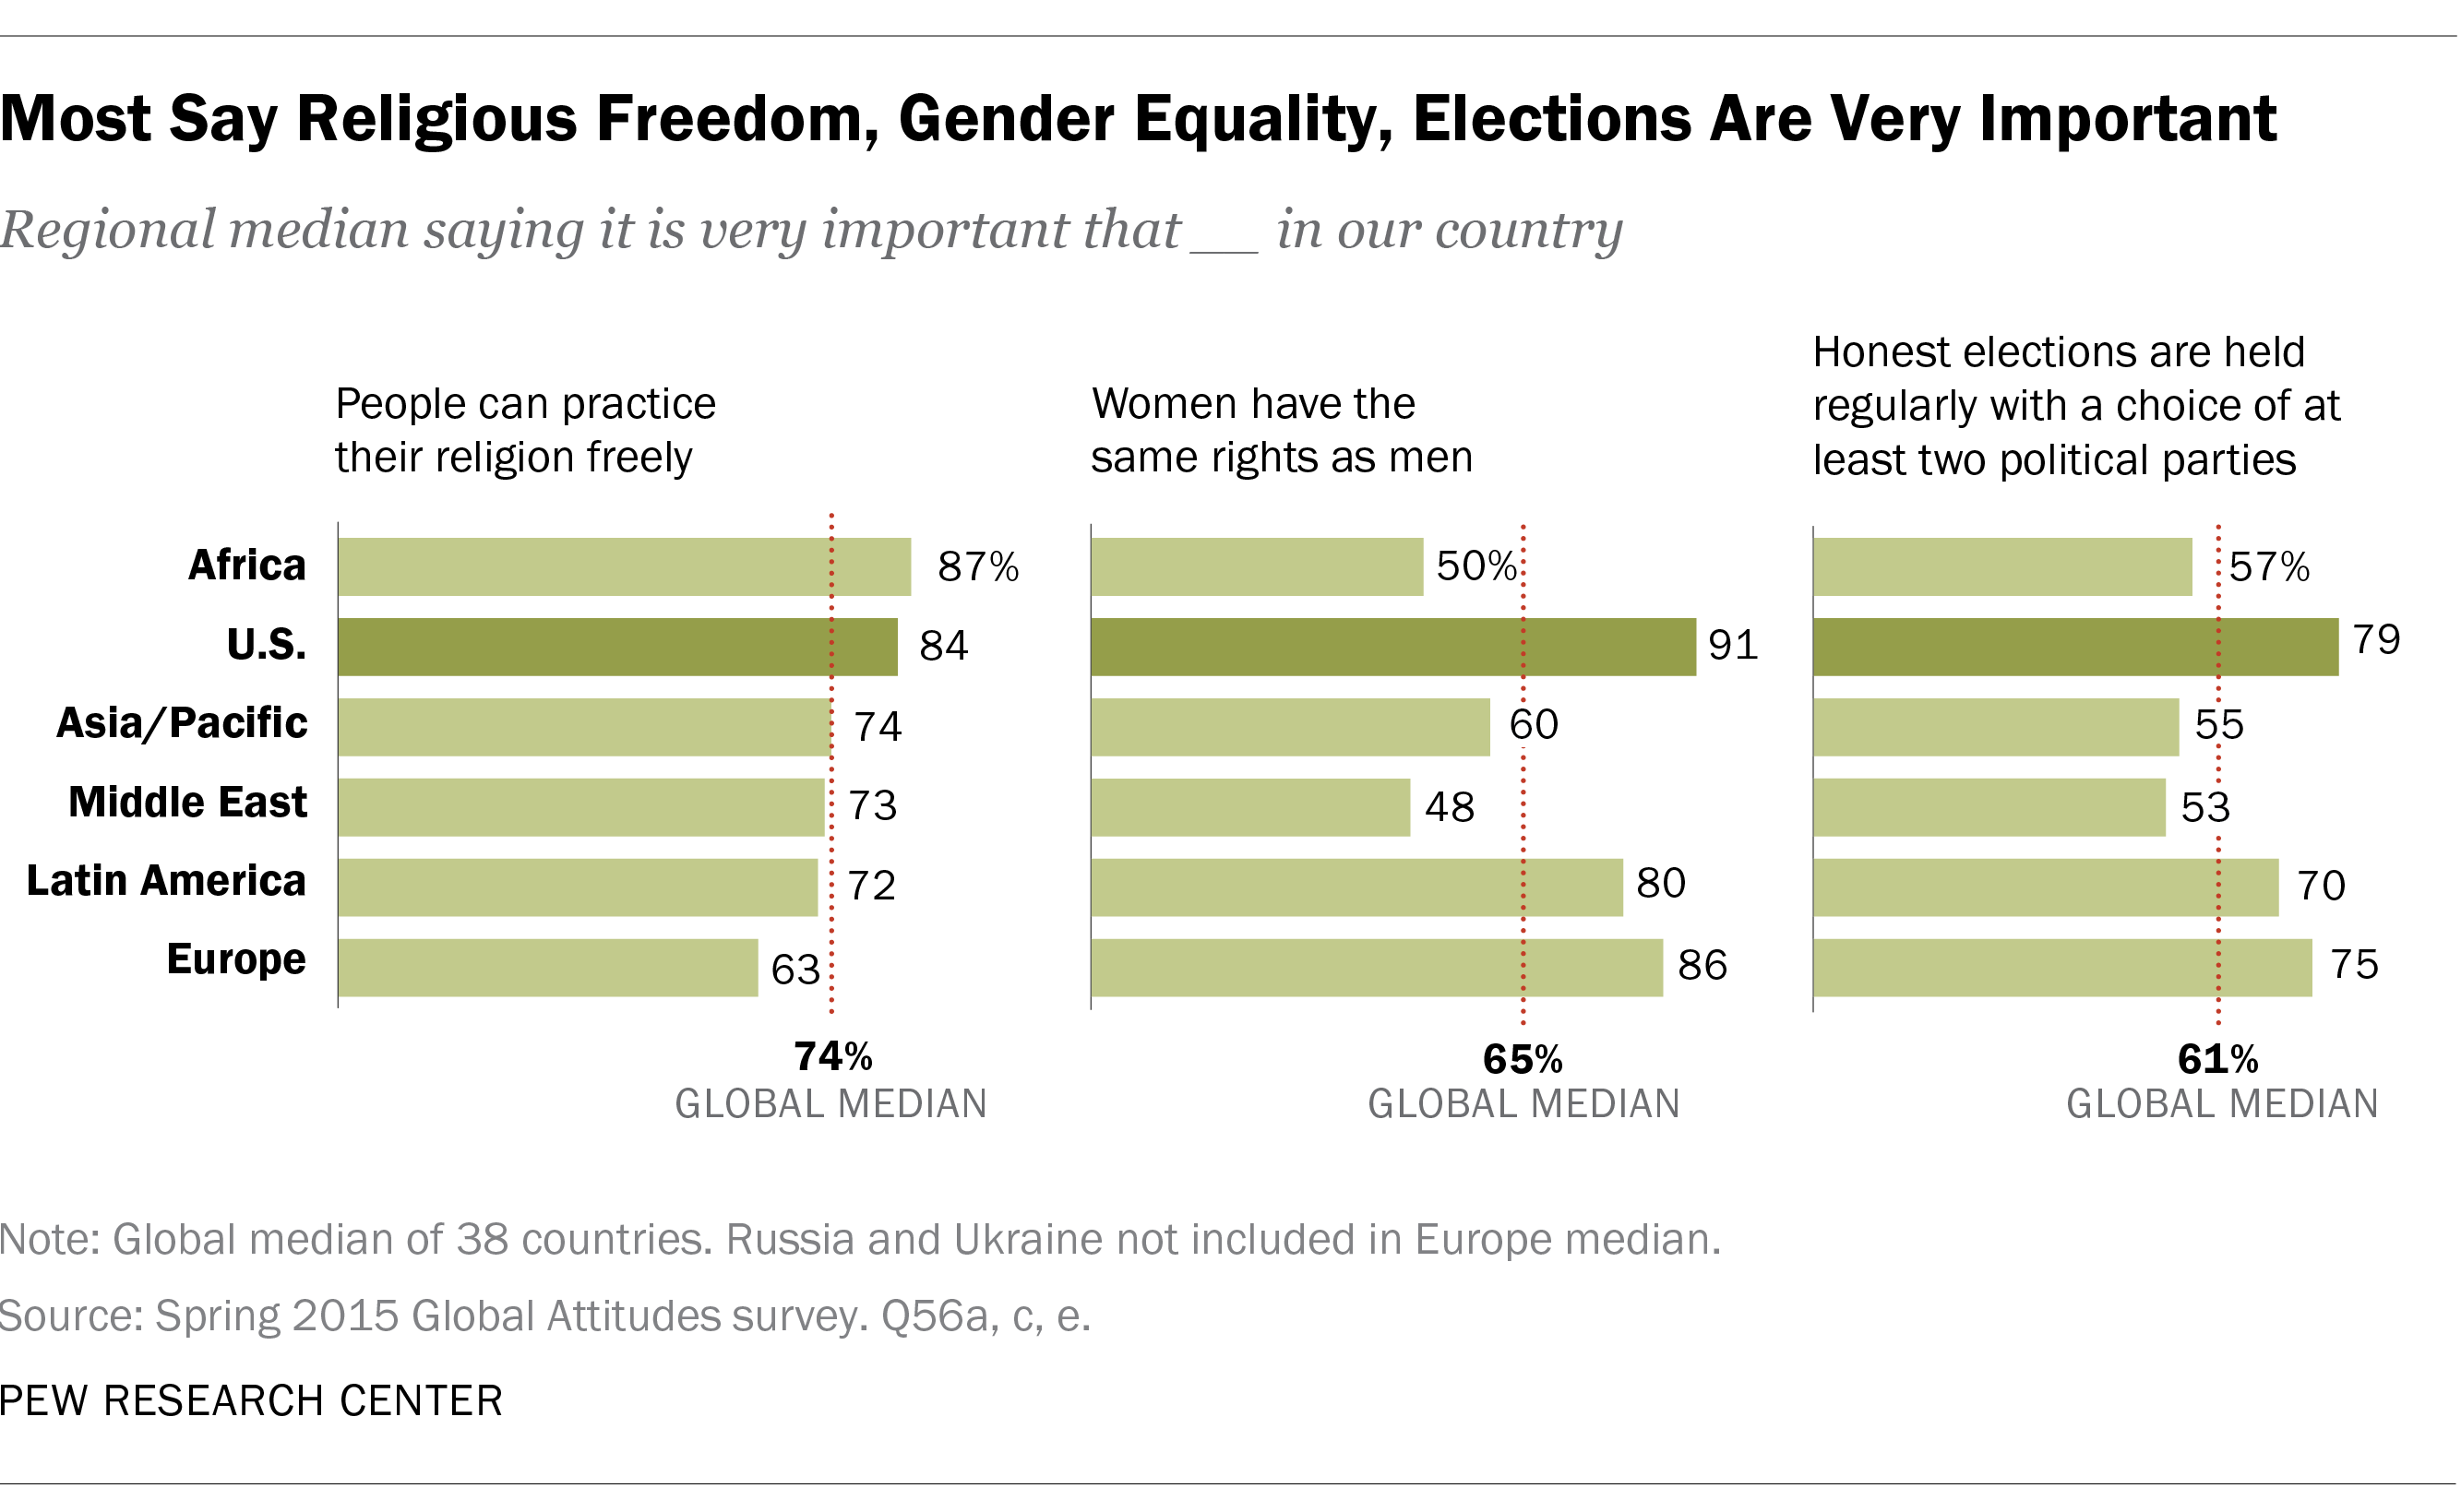 Most Say Religious Freedom, Gender Equality, Elections Are Very Important